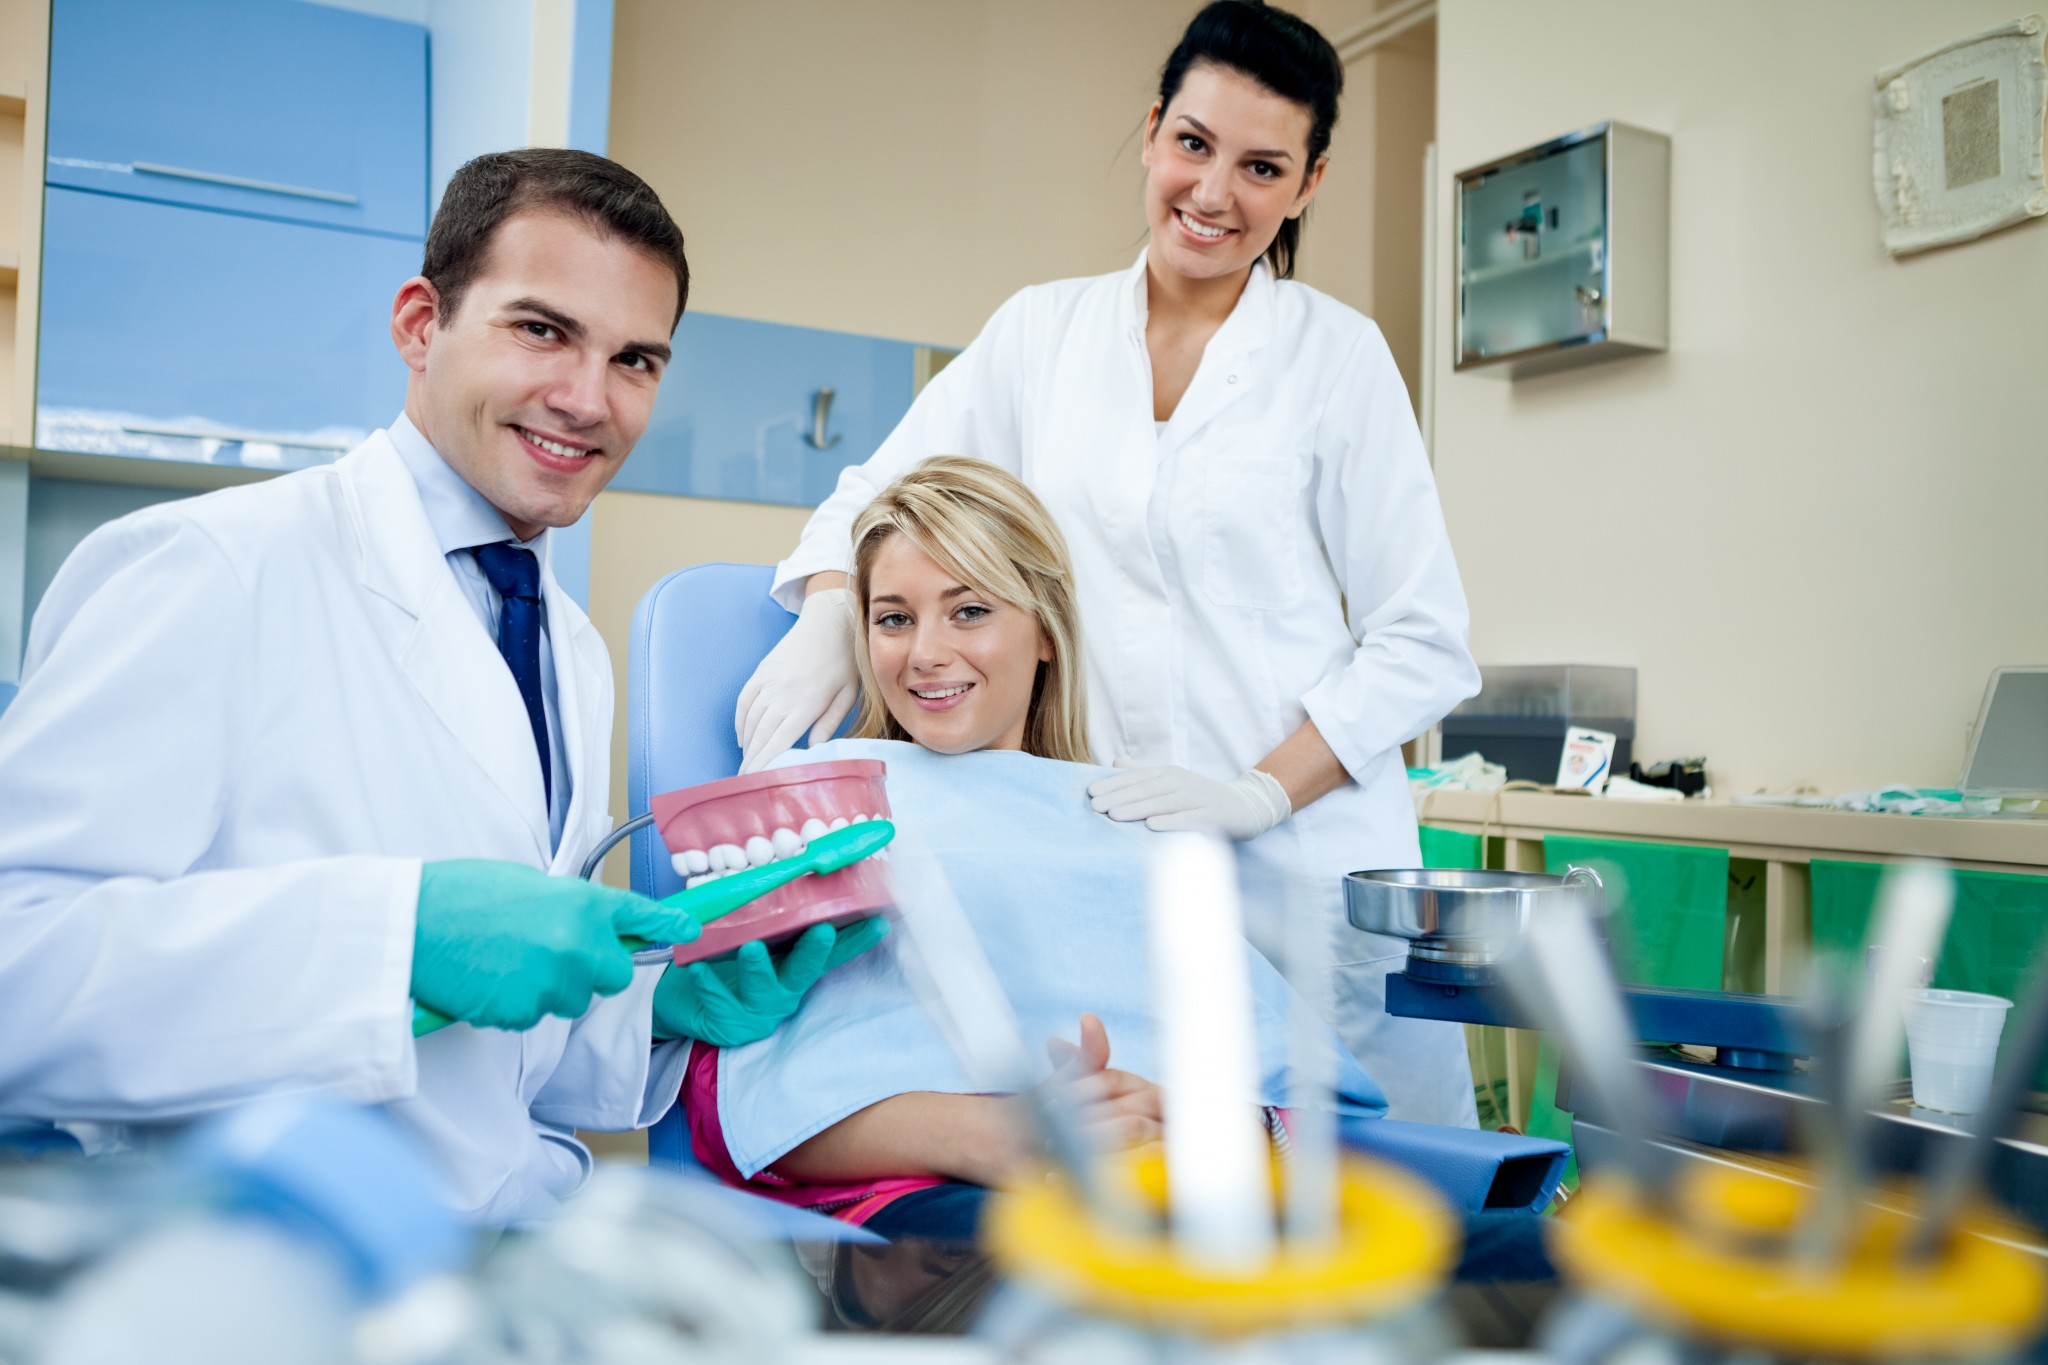 Dr. Marietta DDS - Affordable & Best Cosmetic Dentist in ...